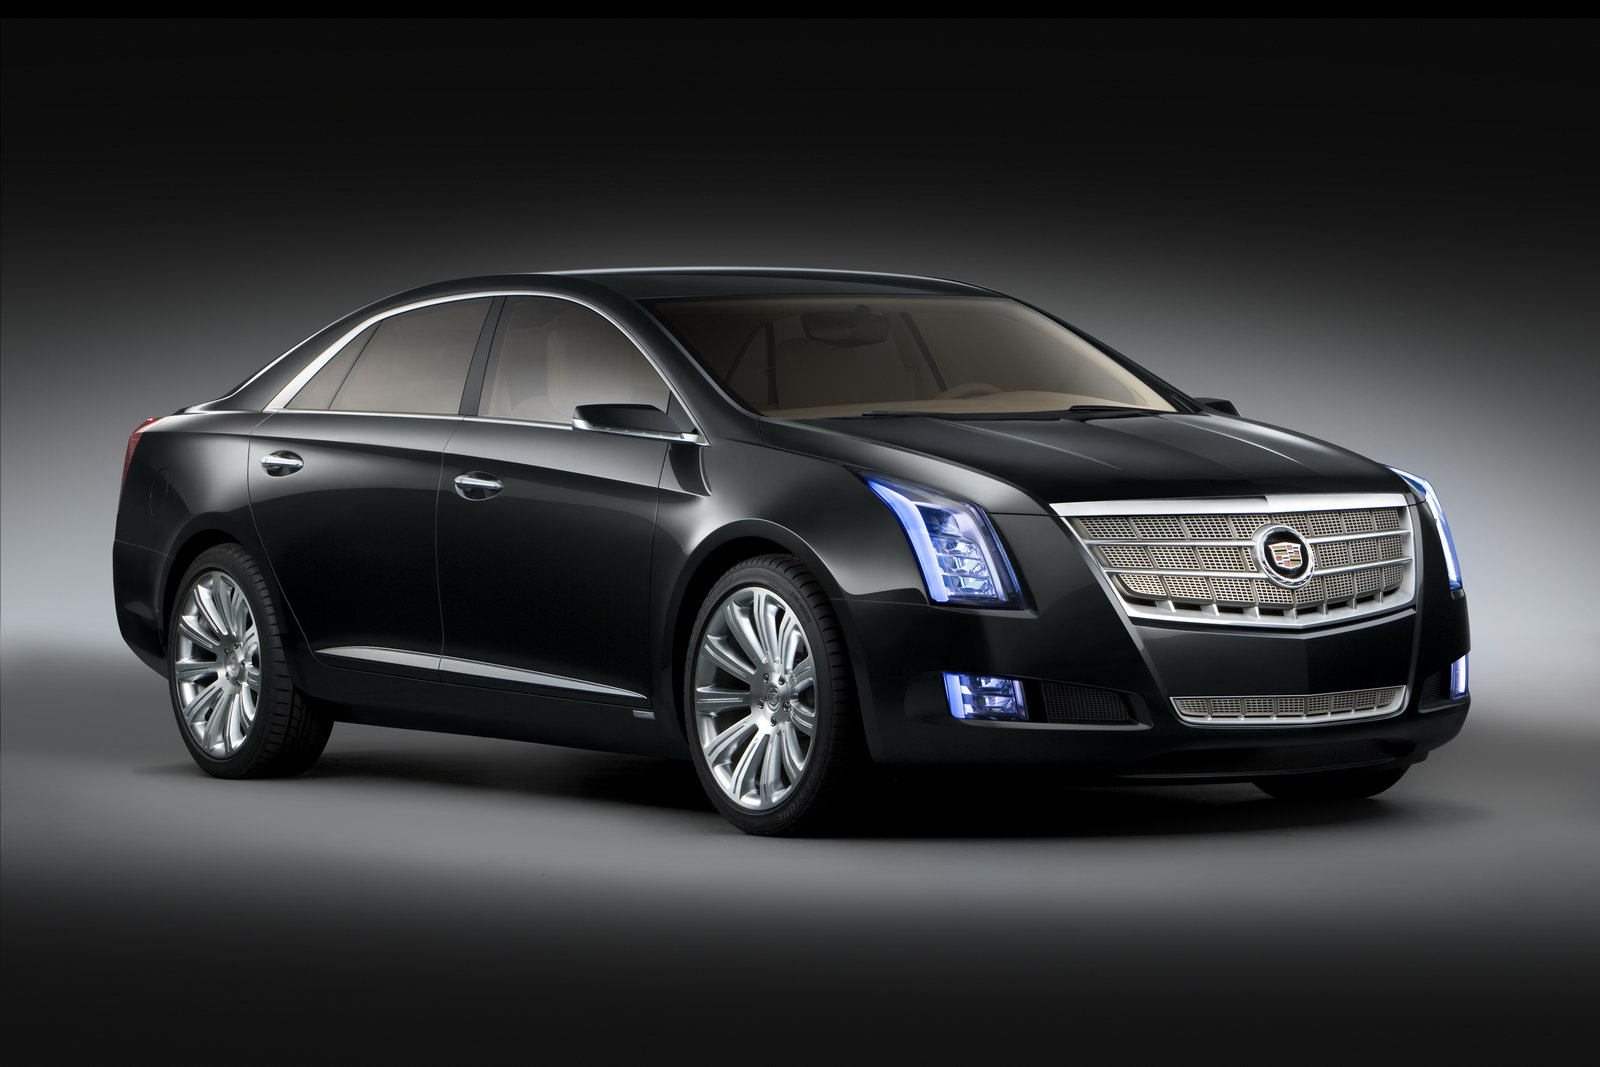 2013 CADILLAC XTS LUXURY SEDAN 4 GENERAL MOTORS TO INTRODUCE NEW CADILLAC XTS LUXURY SEDAN IN 2013